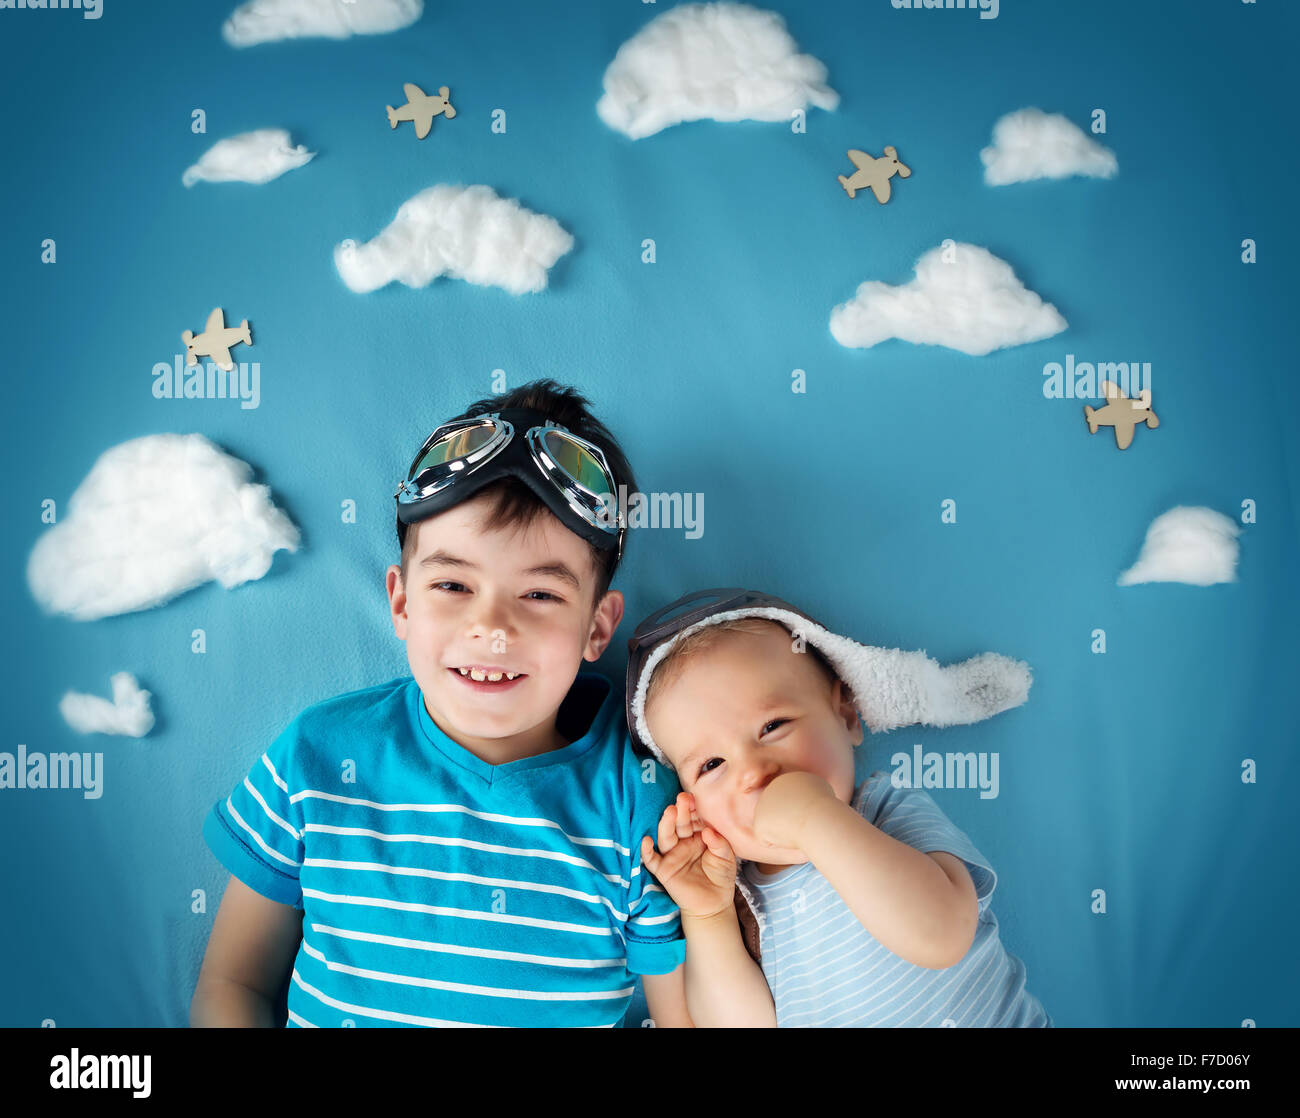 Deux garçons lying on blanket with white clouds Photo Stock